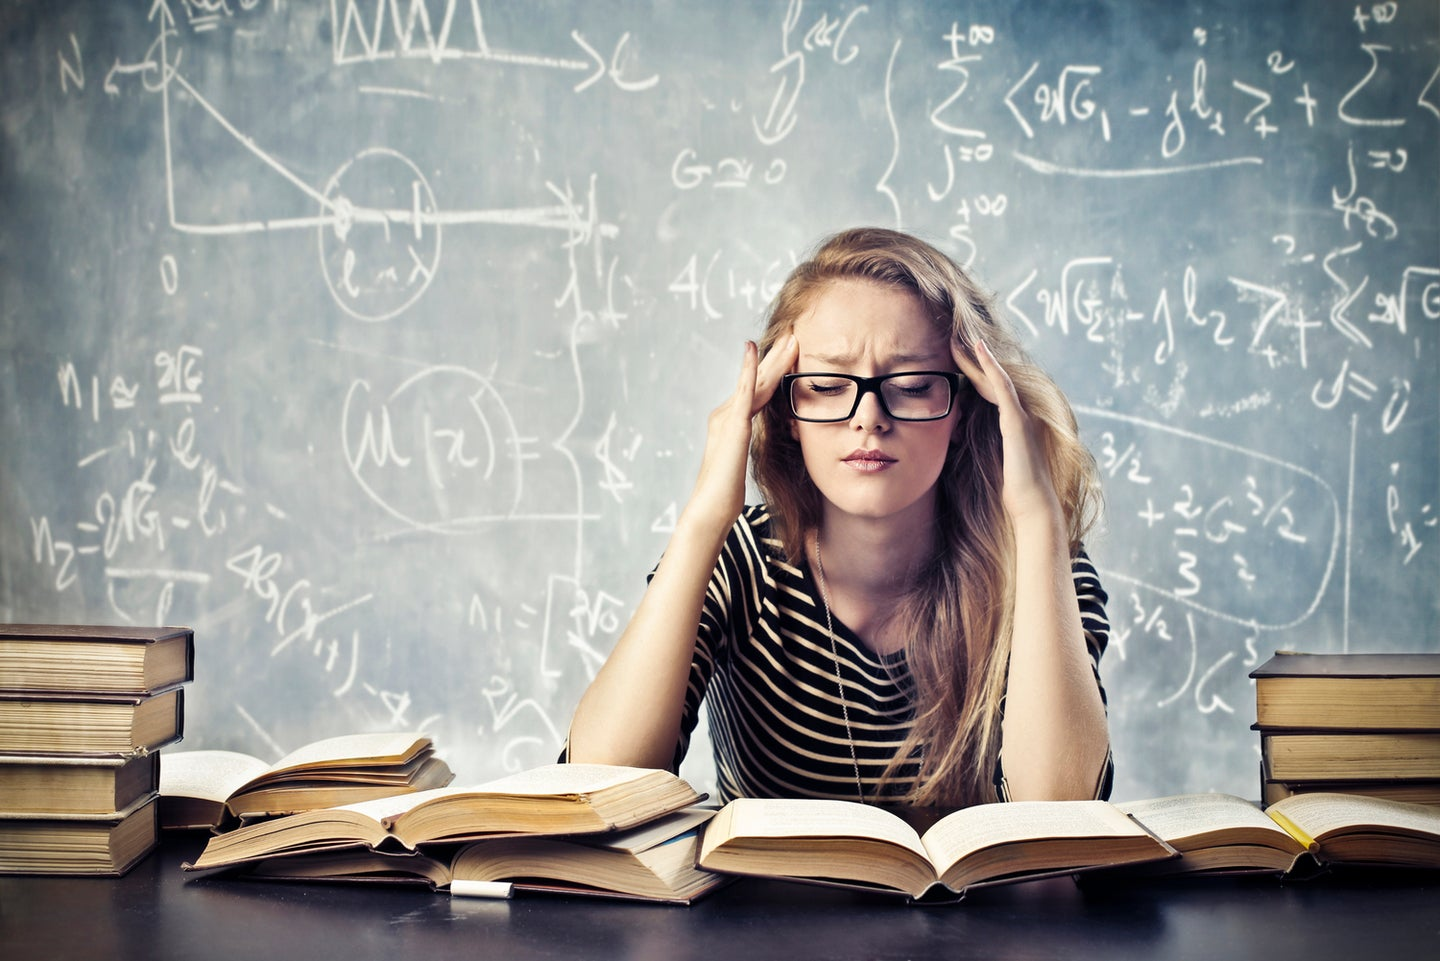 a blonde woman looking stressed out about math and surrounded by books